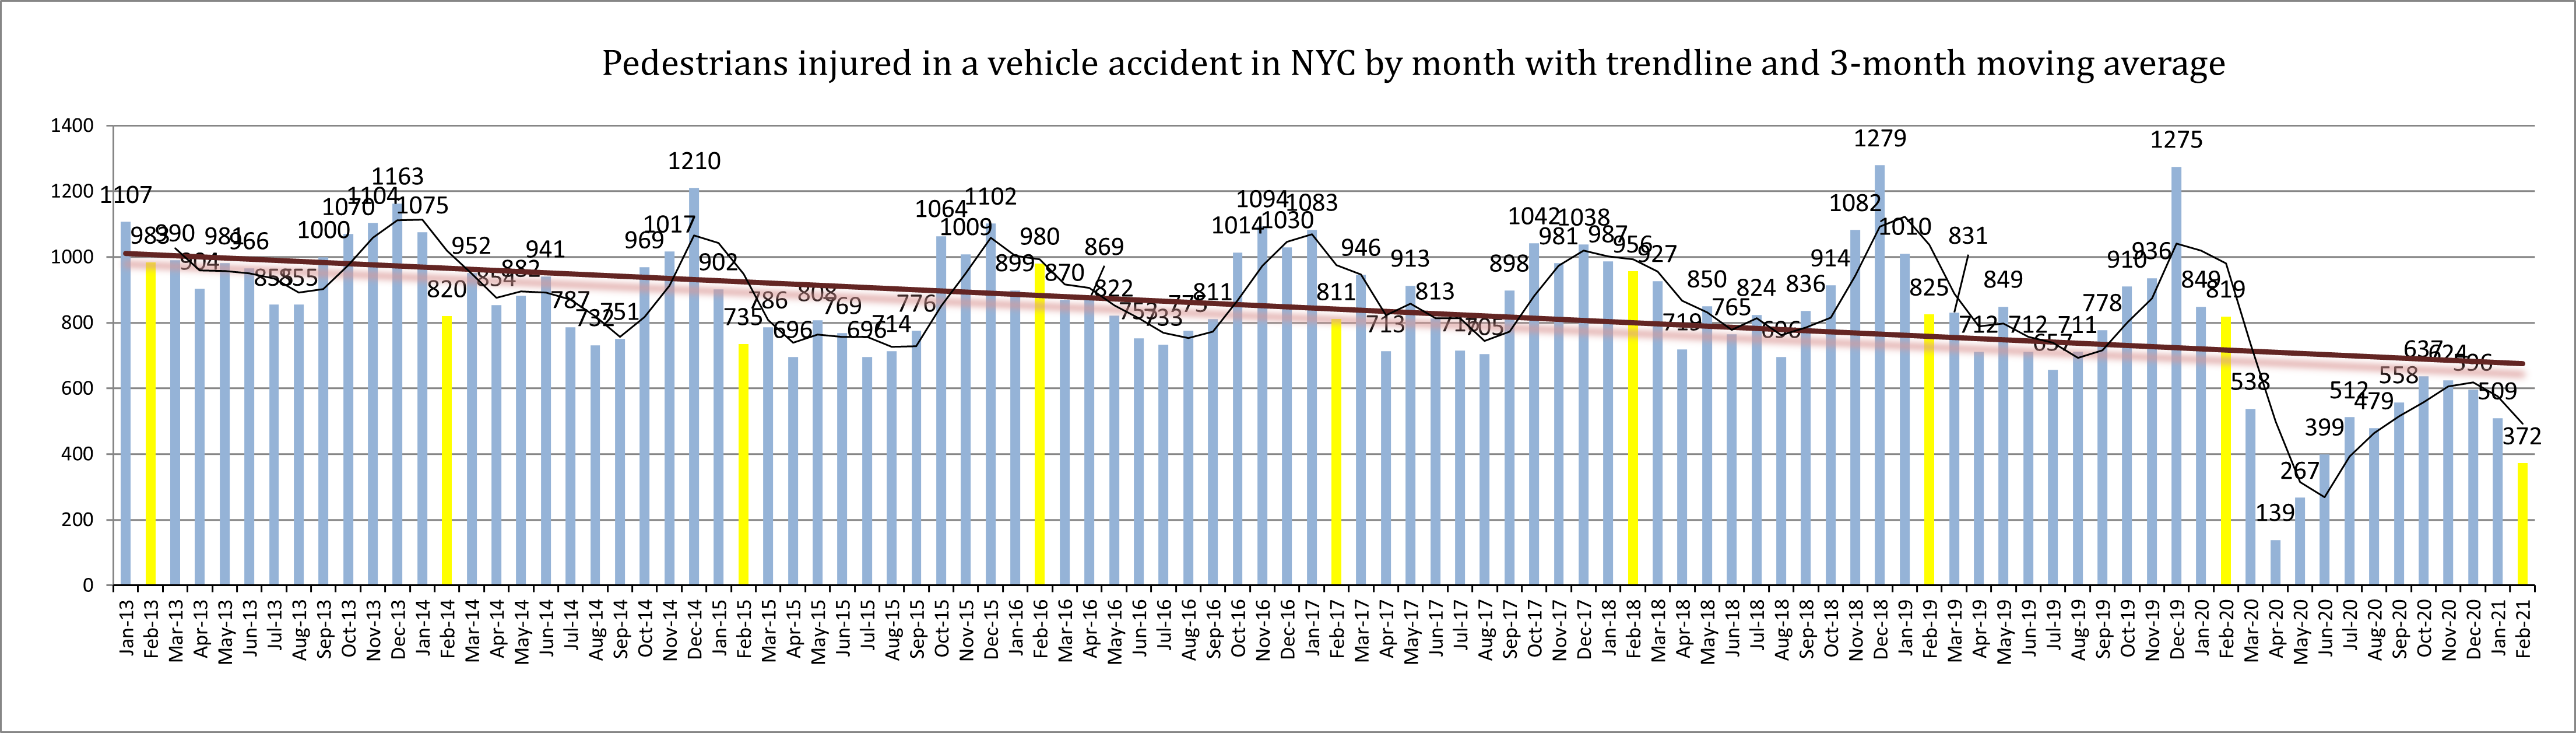 pedestrian accident injuries February 2021